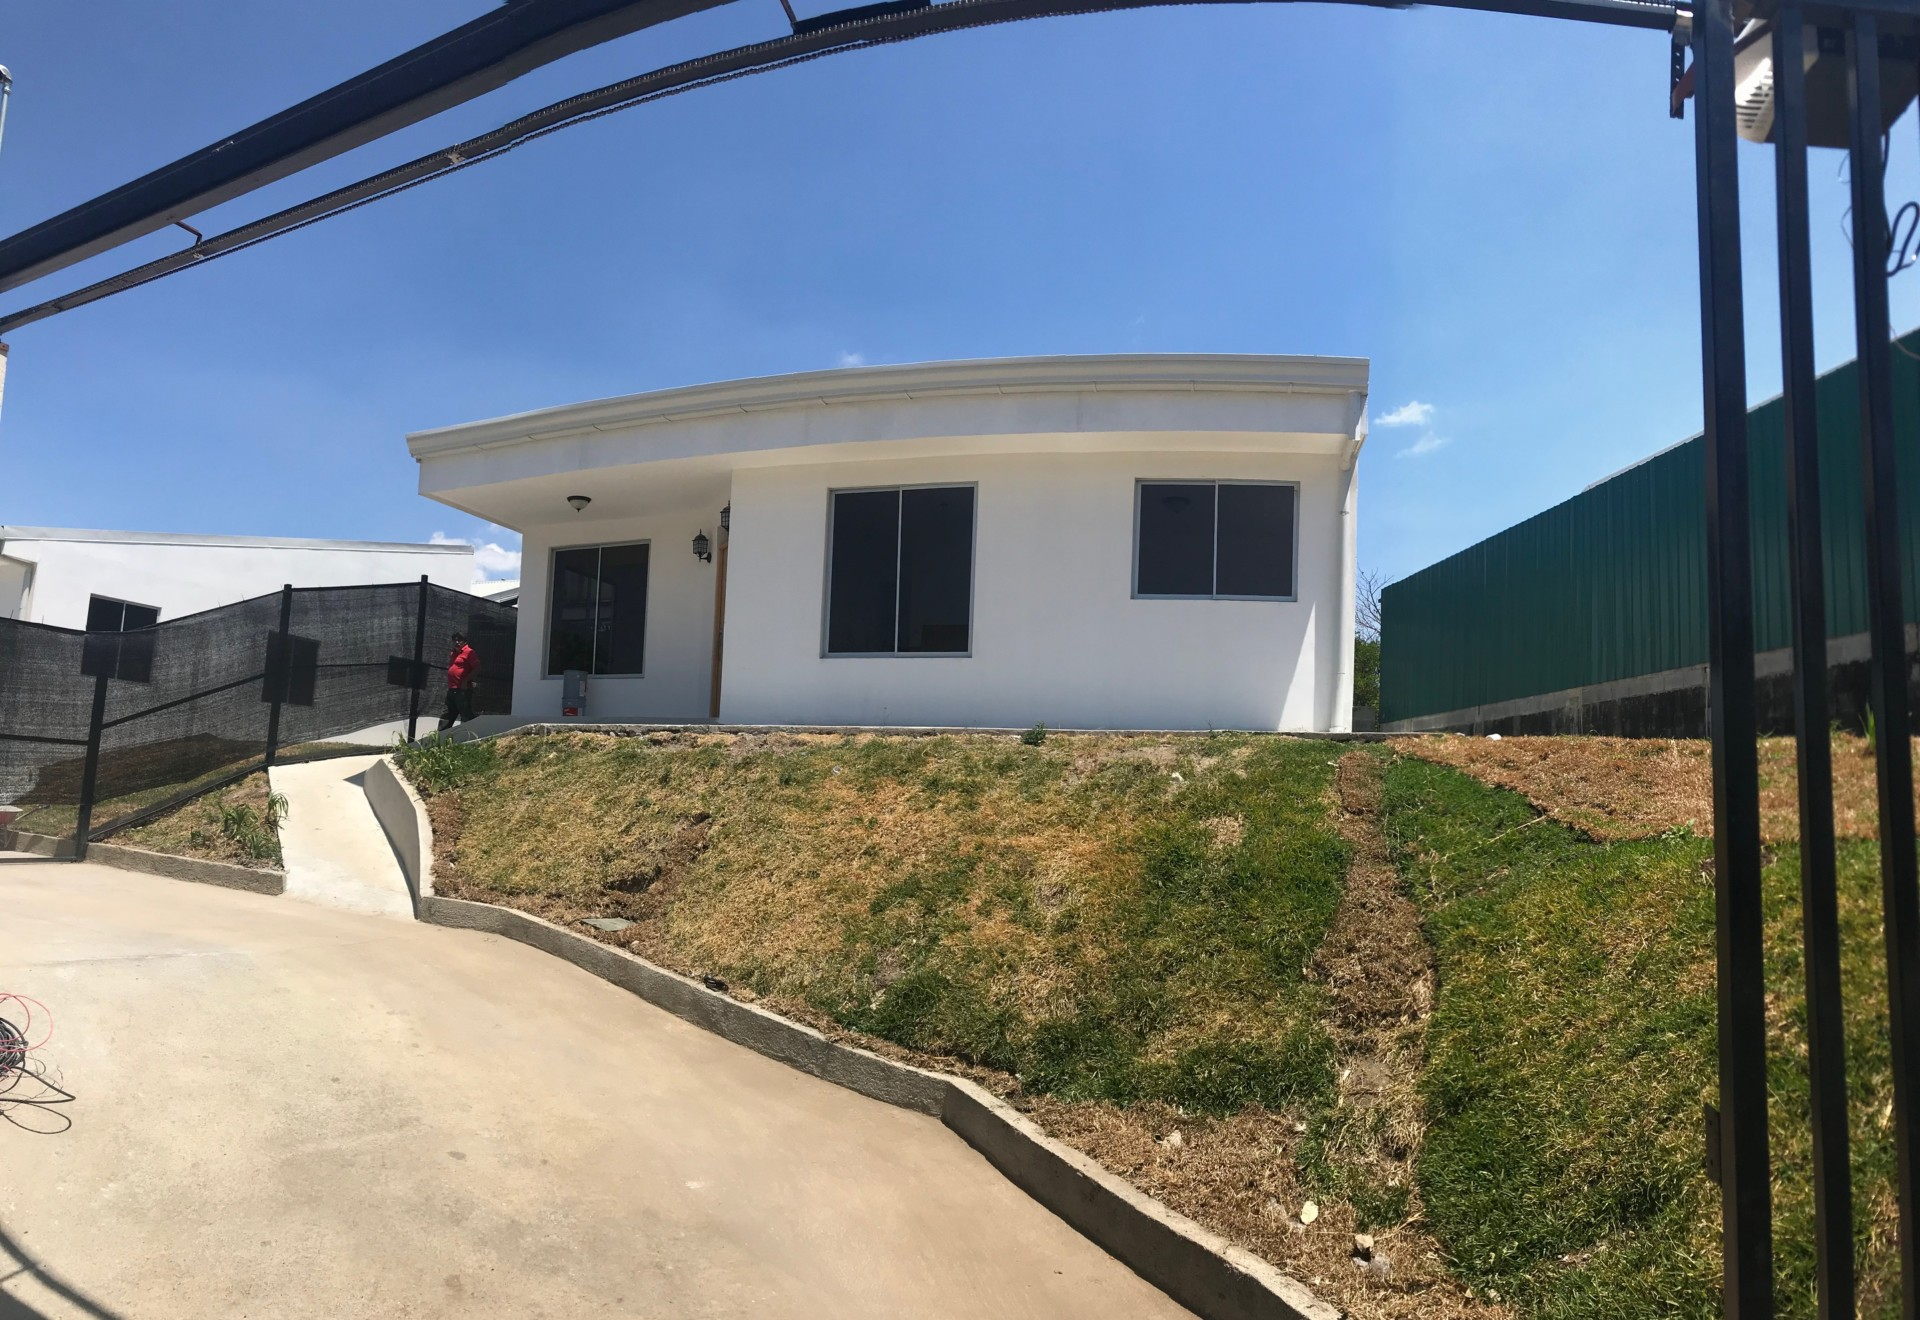 R 2912 Brand New Sigle Level Home In An Excellent Location